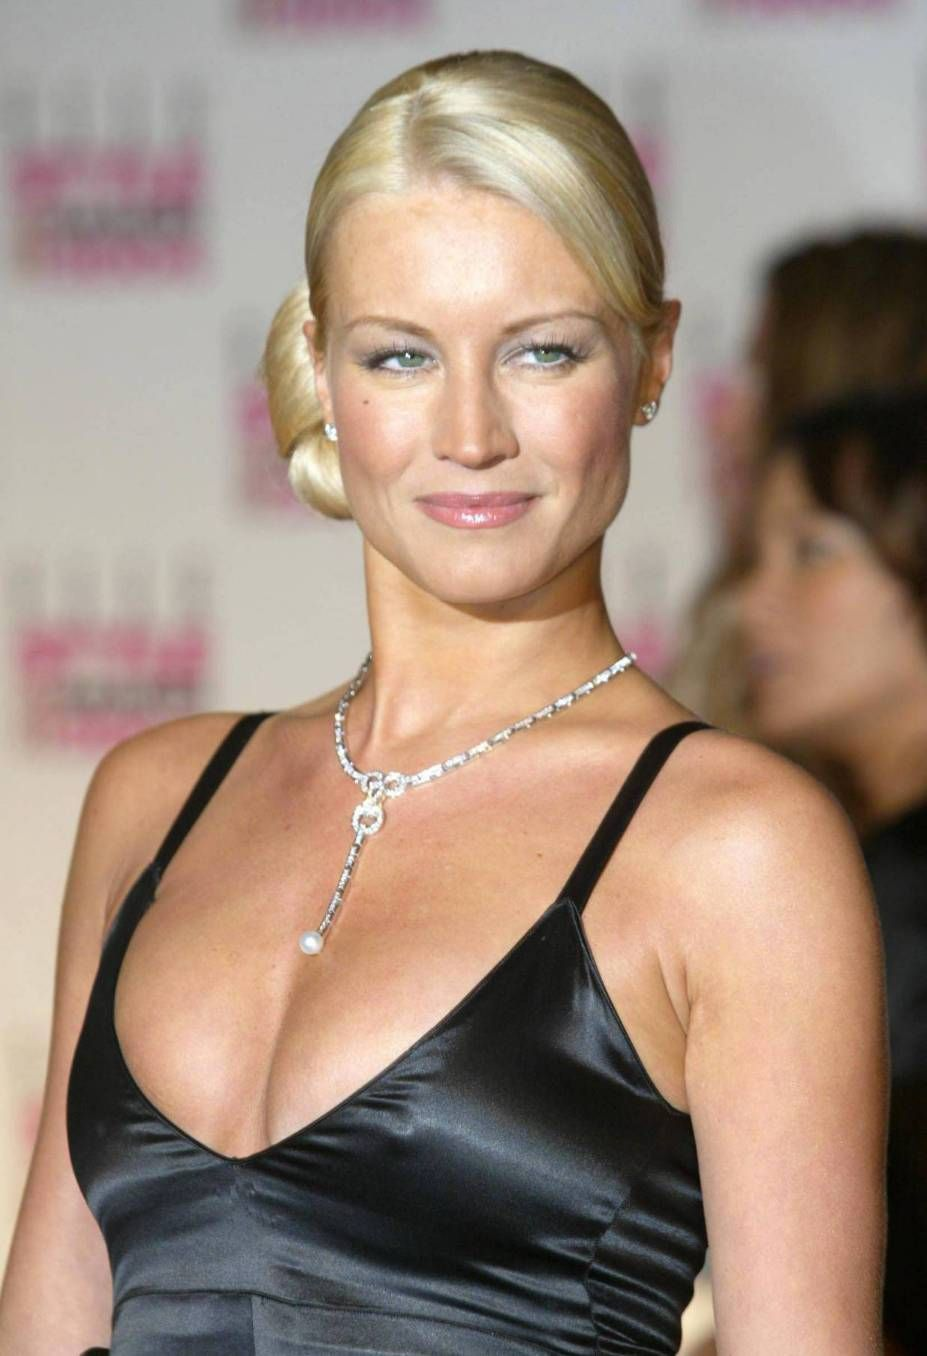 Denise van Outen nudes (54 photos), Ass, Hot, Selfie, cameltoe 2020